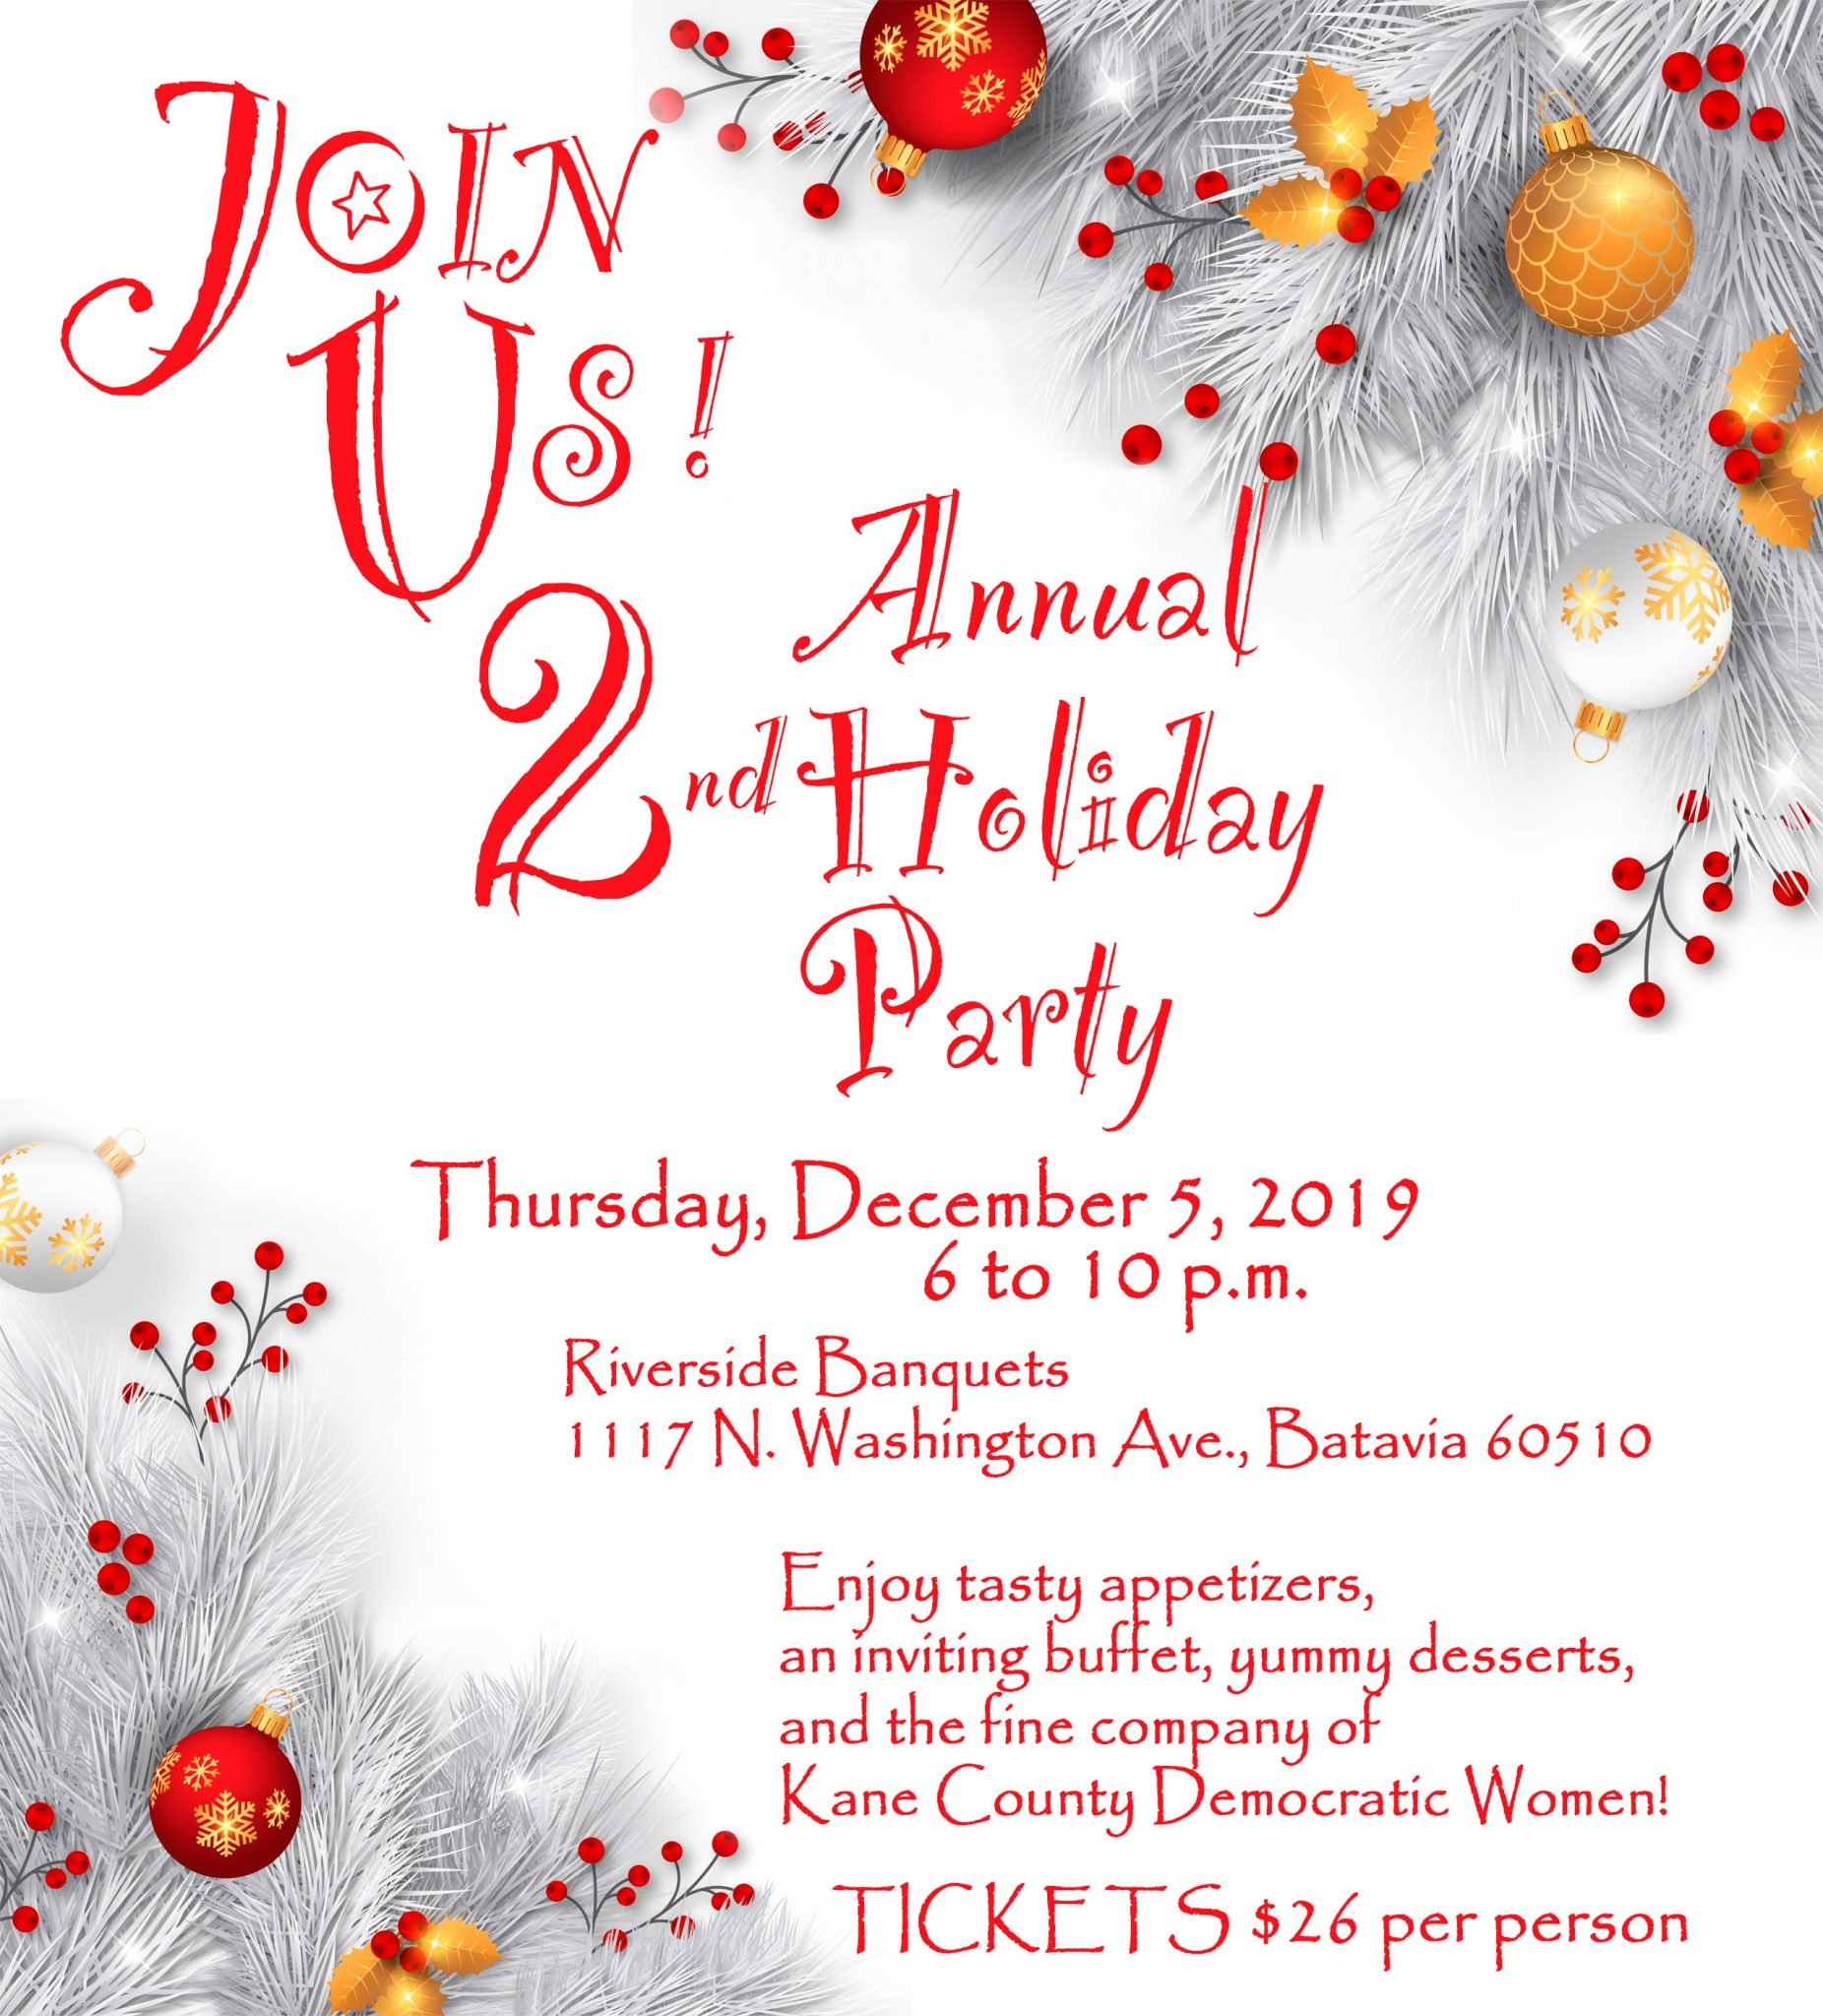 KCDW 2019 Holiday Party